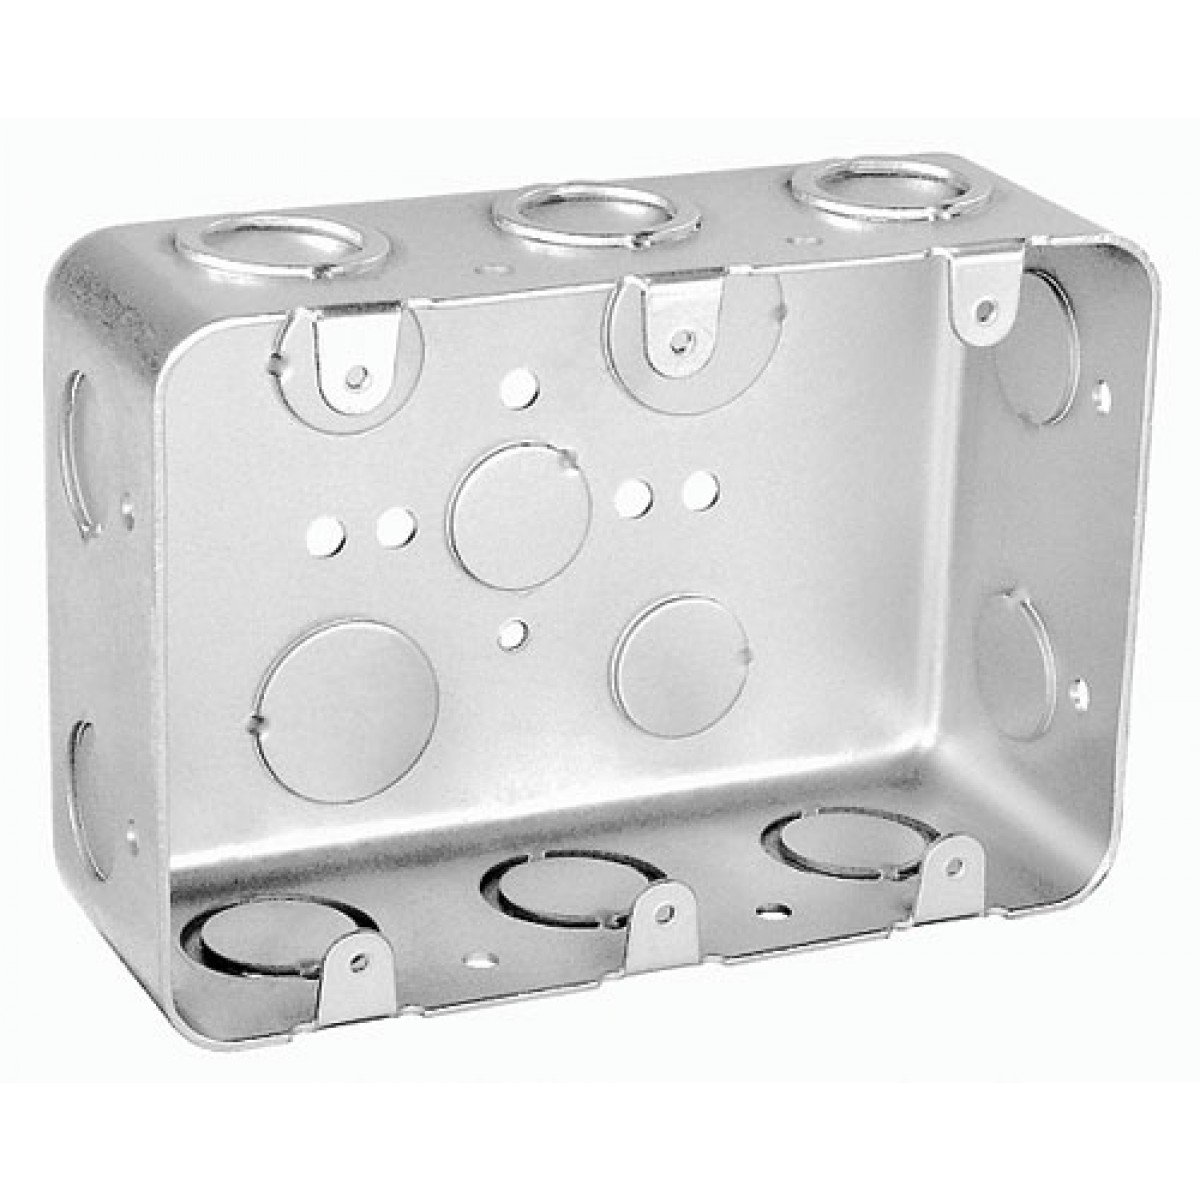 1 Pc, 2-1/8 In. Deep, Three Gang Multi Device Switch Box, .0625 Galvanized Steel, (4) 1/2 In. & (6) 1/2-3/4 In. Side Knockouts; (2) 1/2 & (2) 3/4 In. Bottom Knockouts